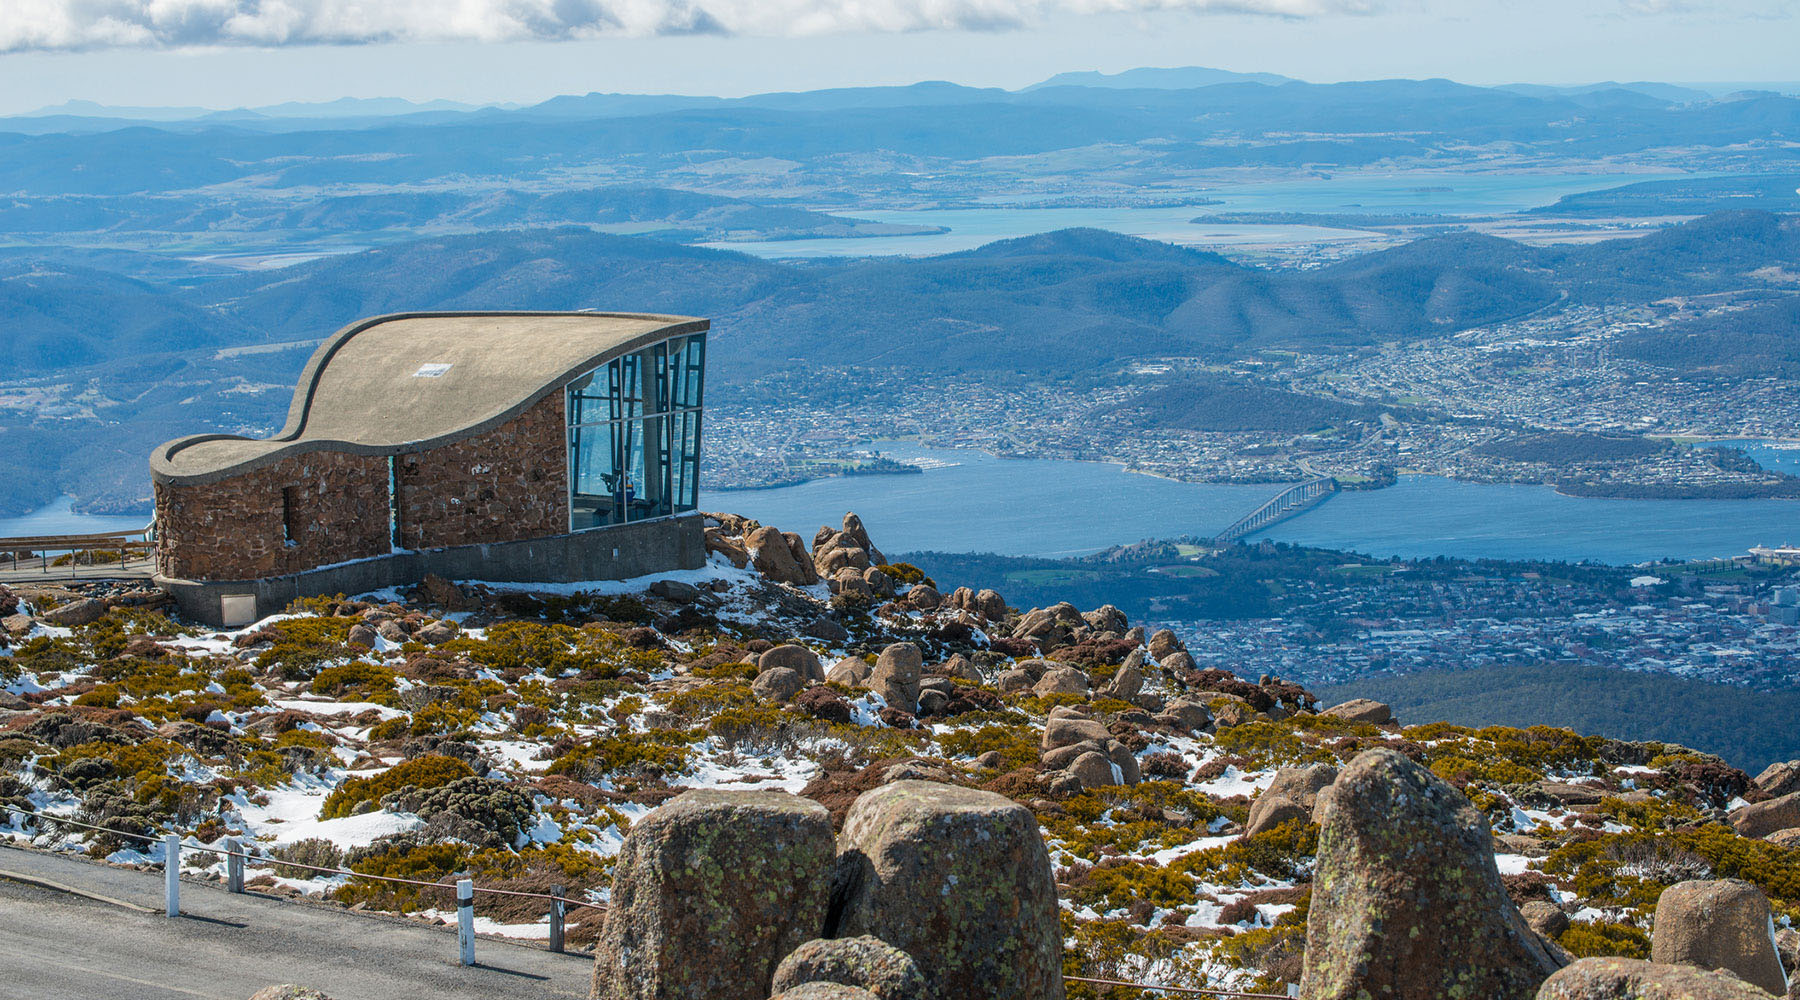 16-NIGHT TASMANIA & NEW ZEALAND VOYAGE